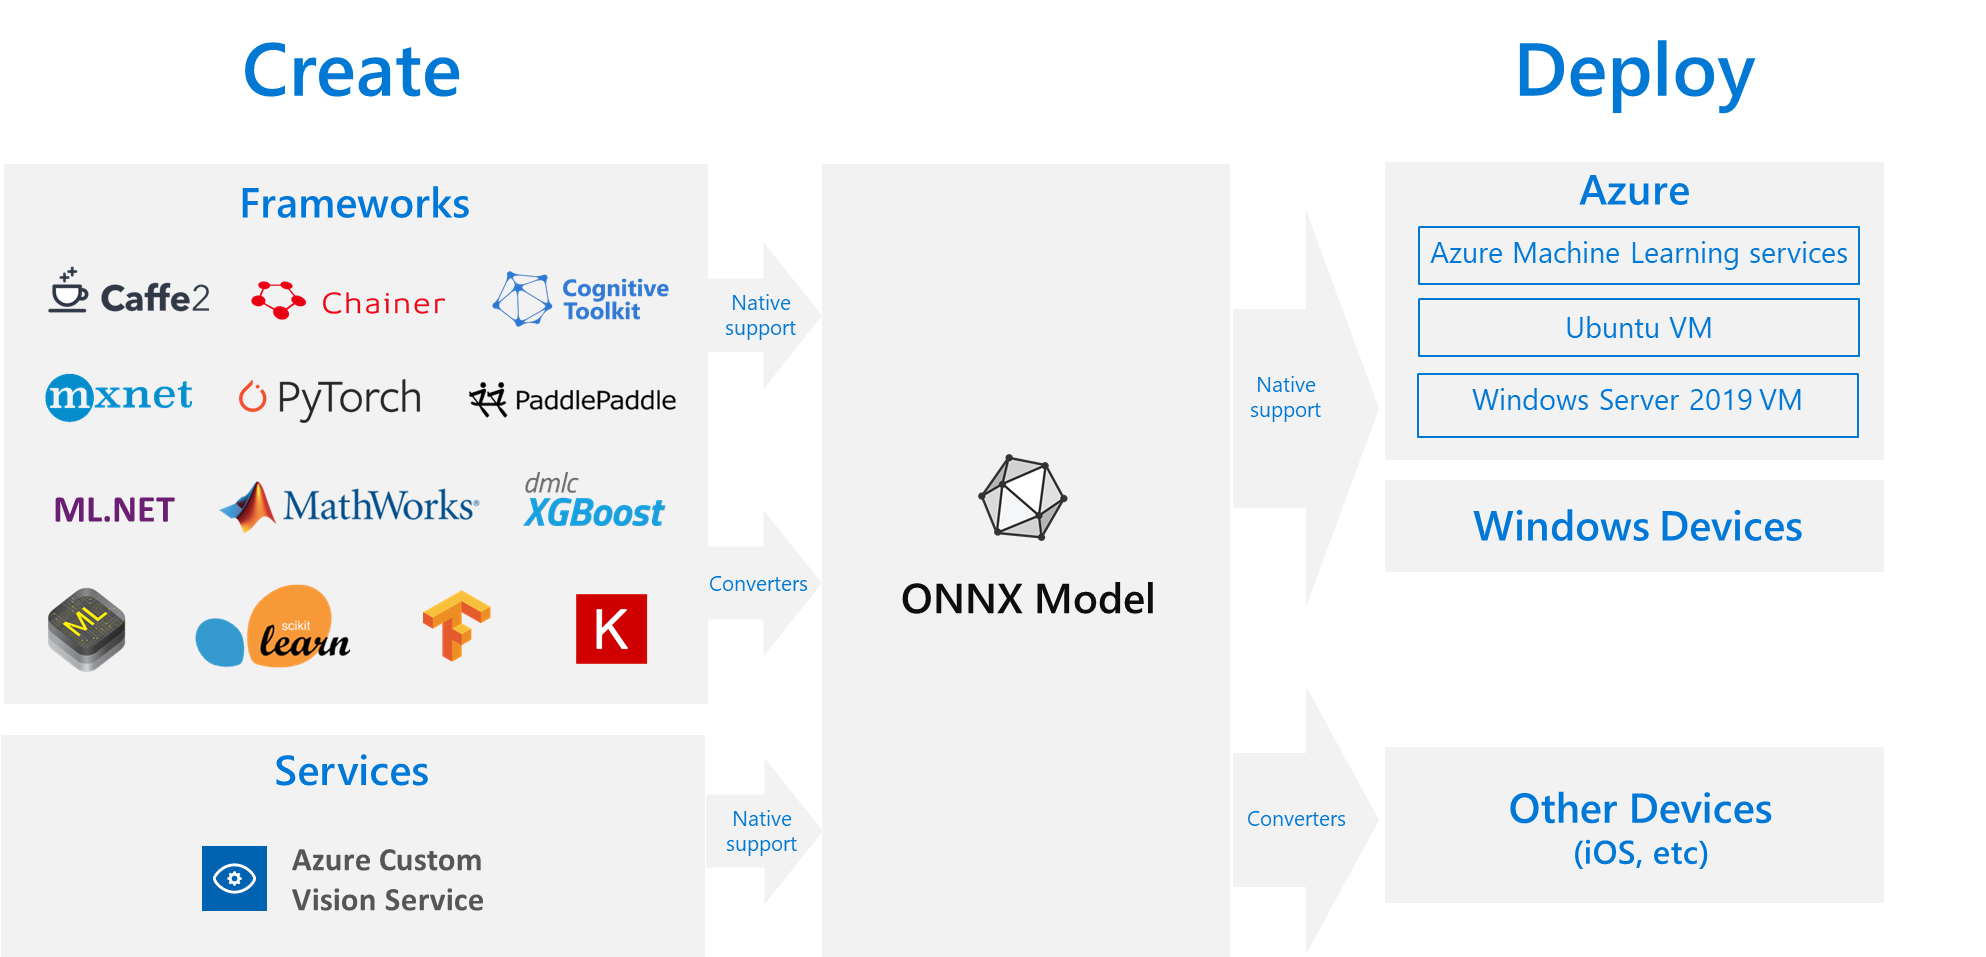 High performance, cross platform inference with ONNX - Azure Machine